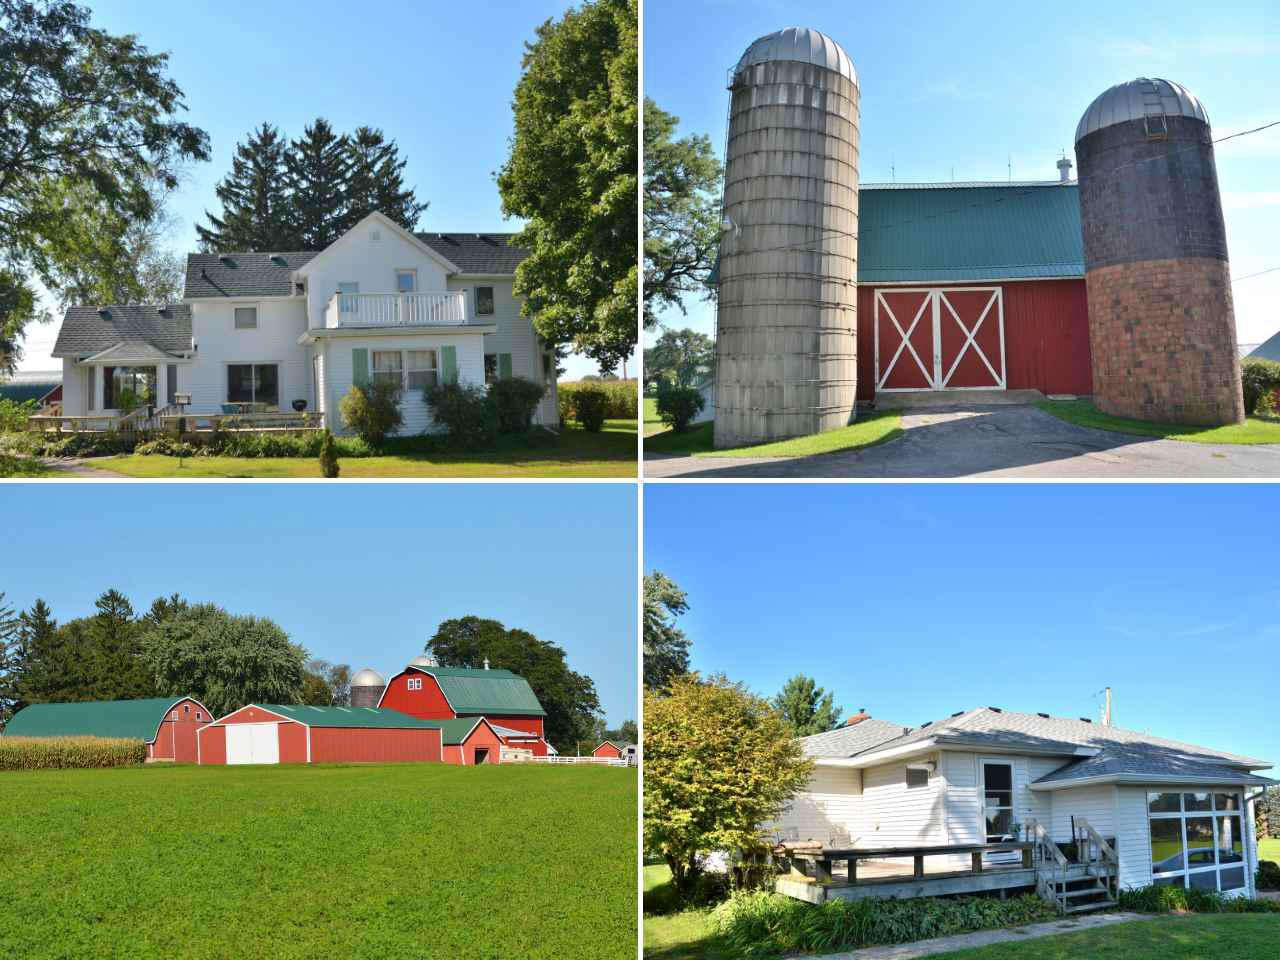 5 acre farmette with 2 homes and 10 outbuildings between Windsor and Deforest.    One home built in 1900 and the other built in 1951.  Both homes are well cared for and would make great home, business or investment.  Are you looking for storage space? A place to keep your horses? A barn for weddings?  These amazing outbuildings and barns are well maintained and have metal roofs. Lots of exciting development surrounding this property from new neighborhoods to ball fields to bike trails. This farm has been in the family for over 100 years and now is your chance to own 5 acres with easy access to Madison and Sun Prairie.